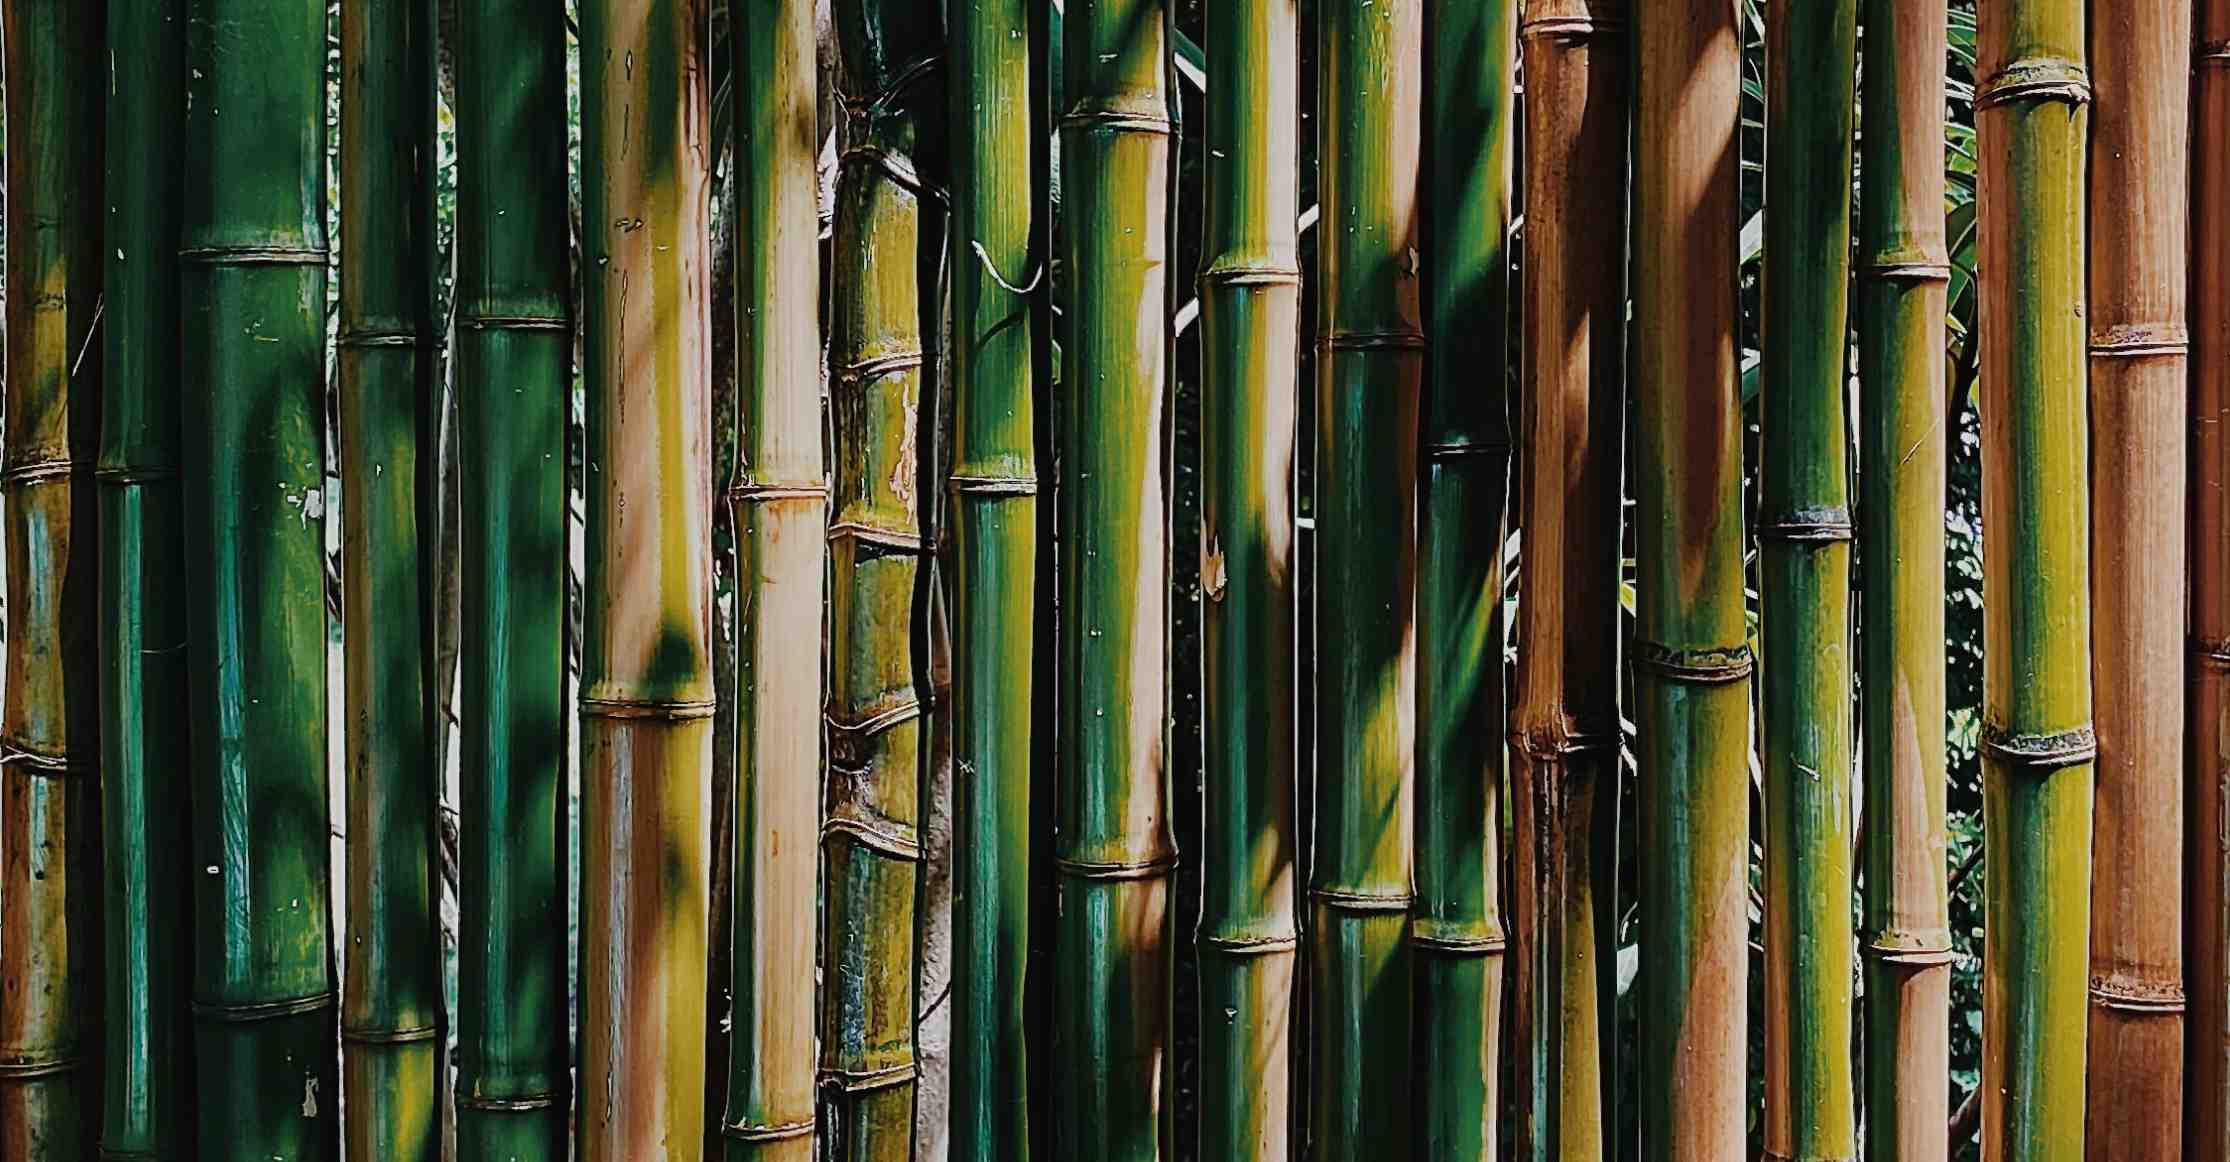 How to treat bamboo poles